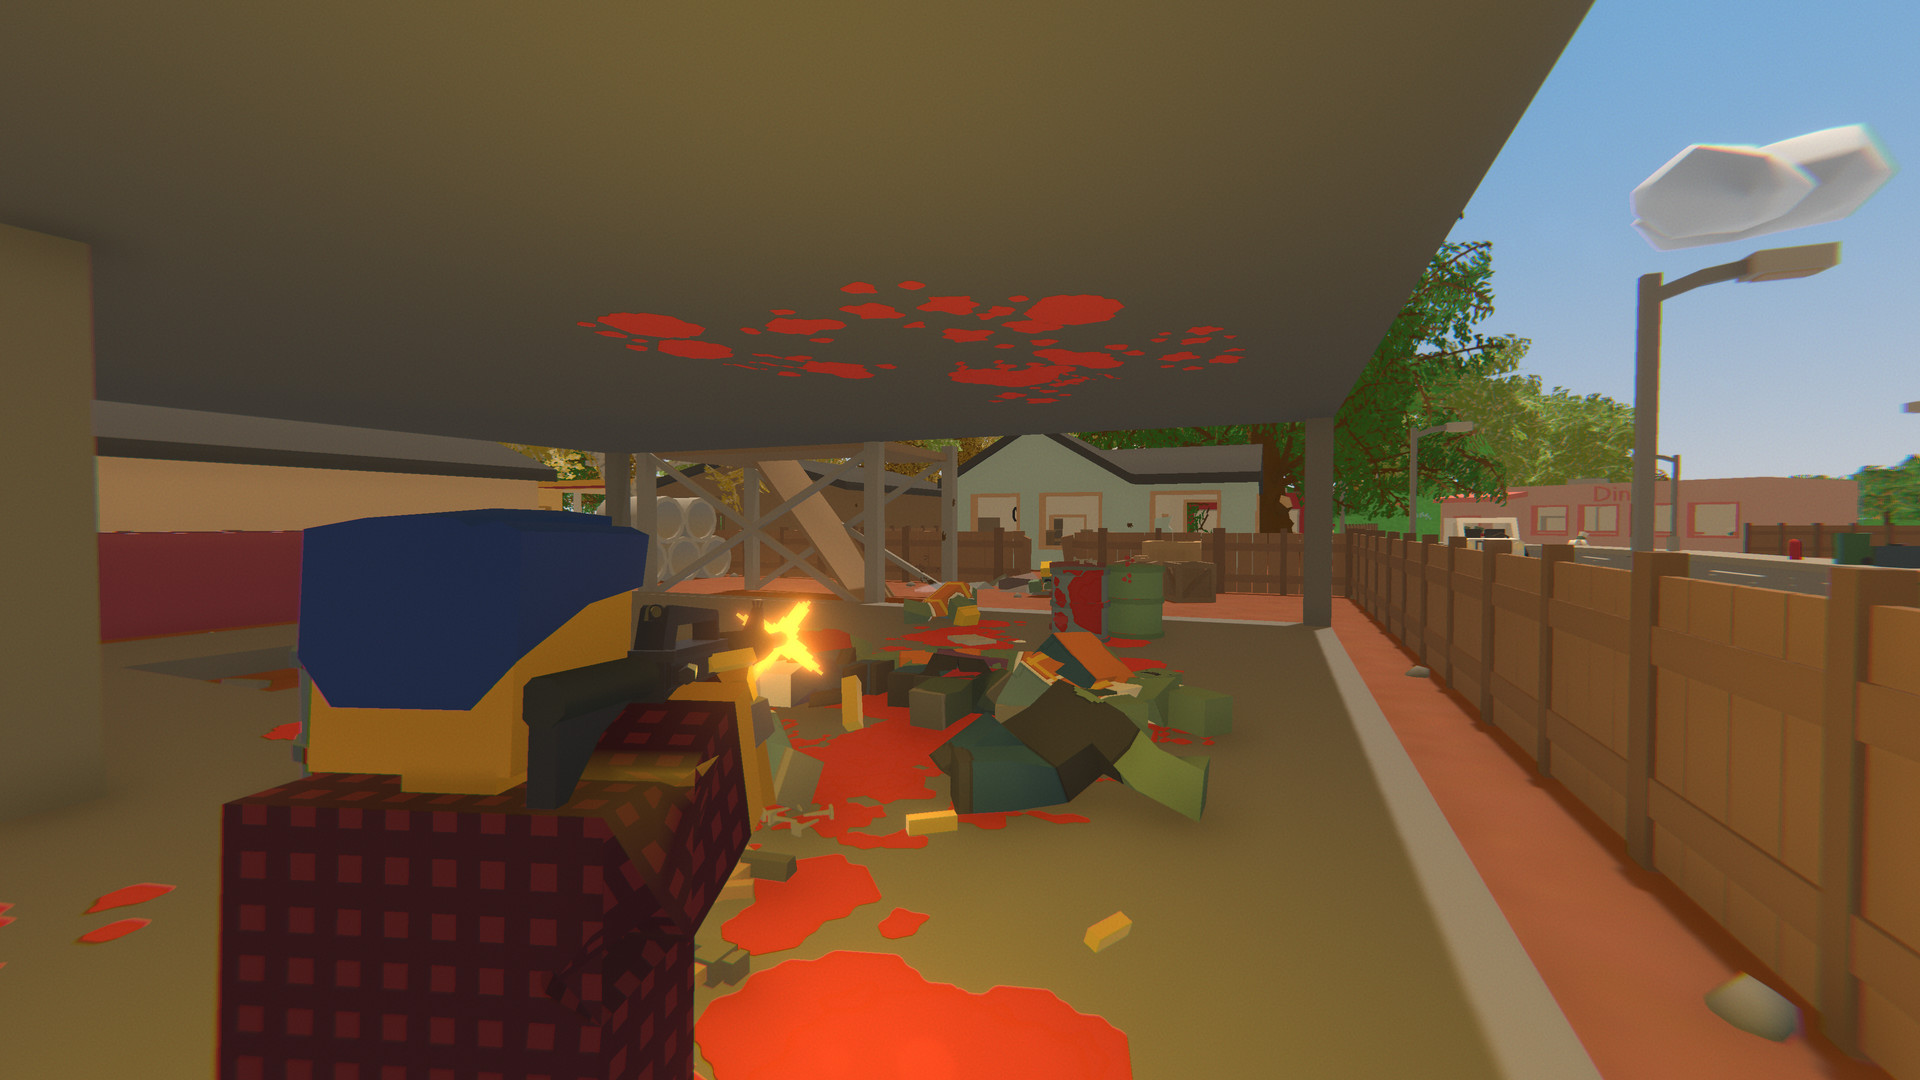 Unturned free games like minecraft